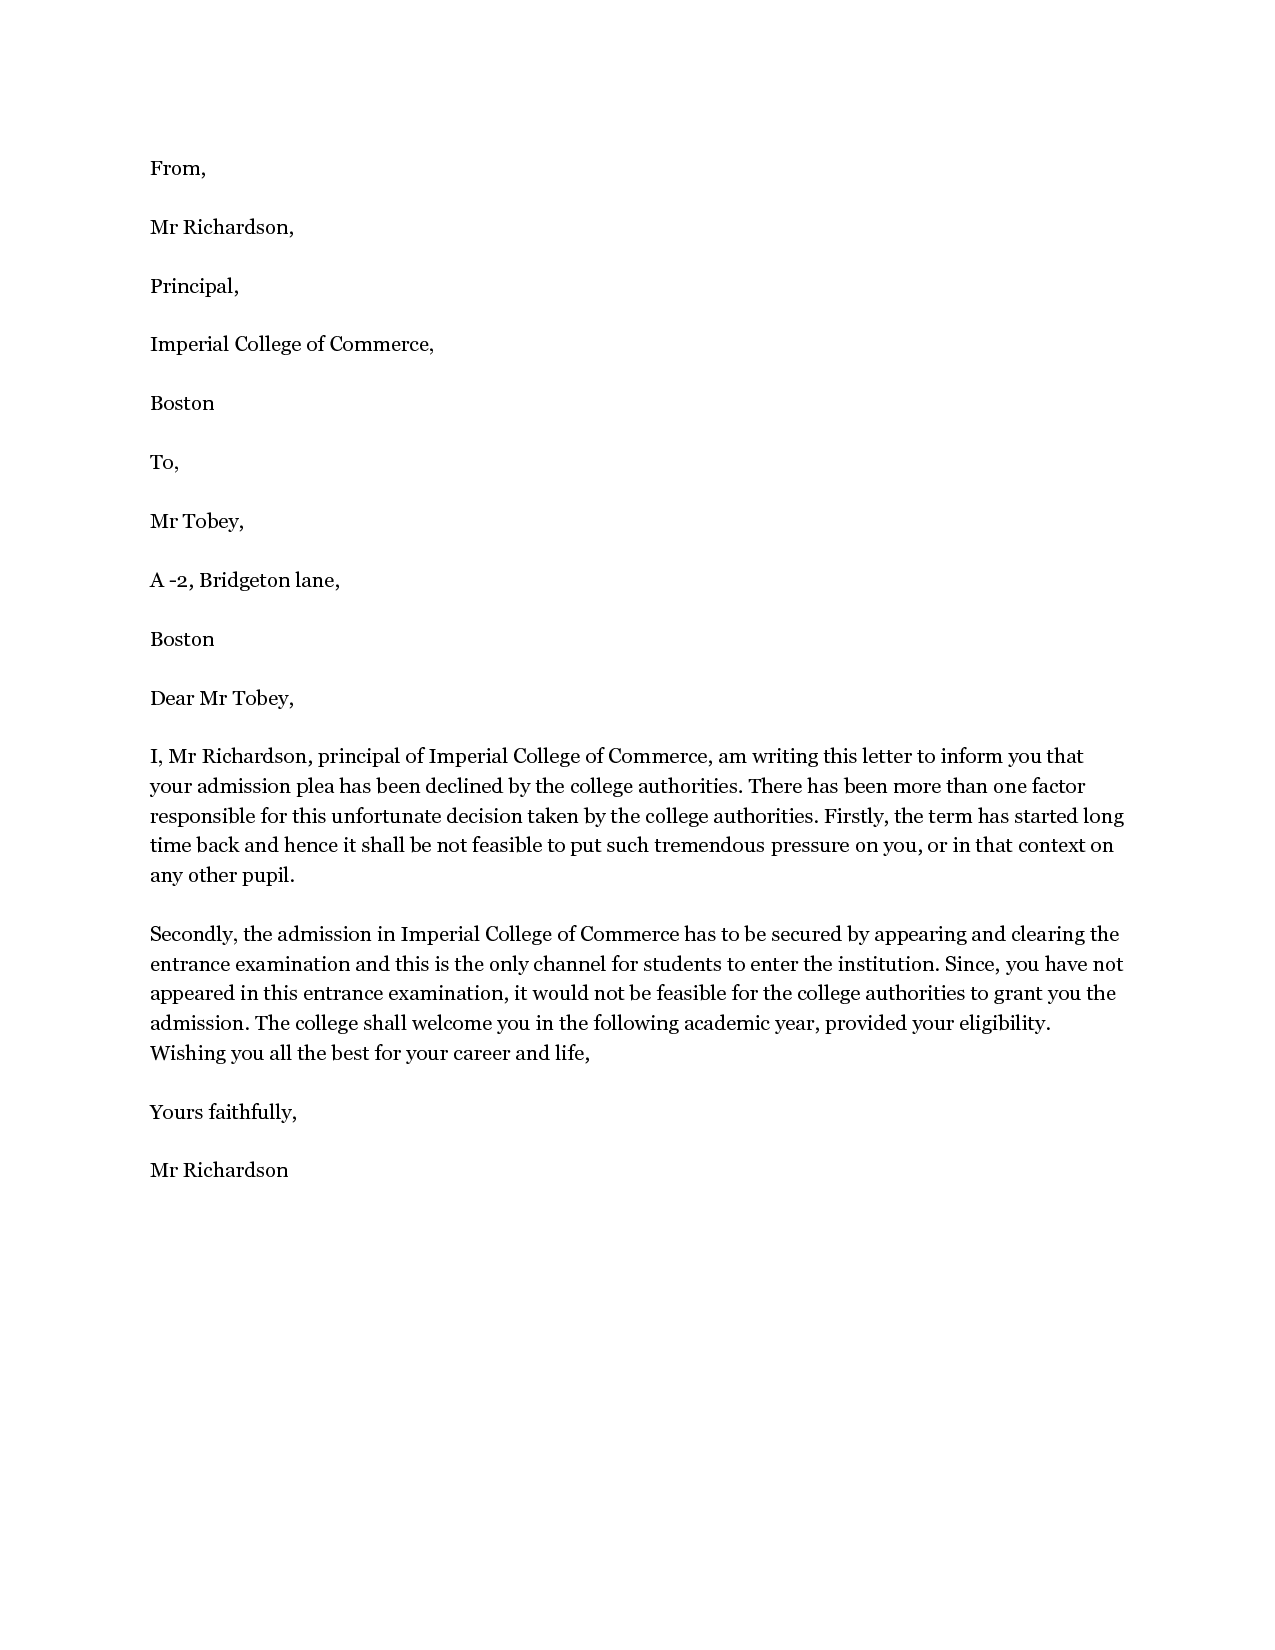 Decline admission letter the letter should be brief positive college decline letter the letter should be brief positive and to the point here is a sample letter for declining college admission altavistaventures Gallery